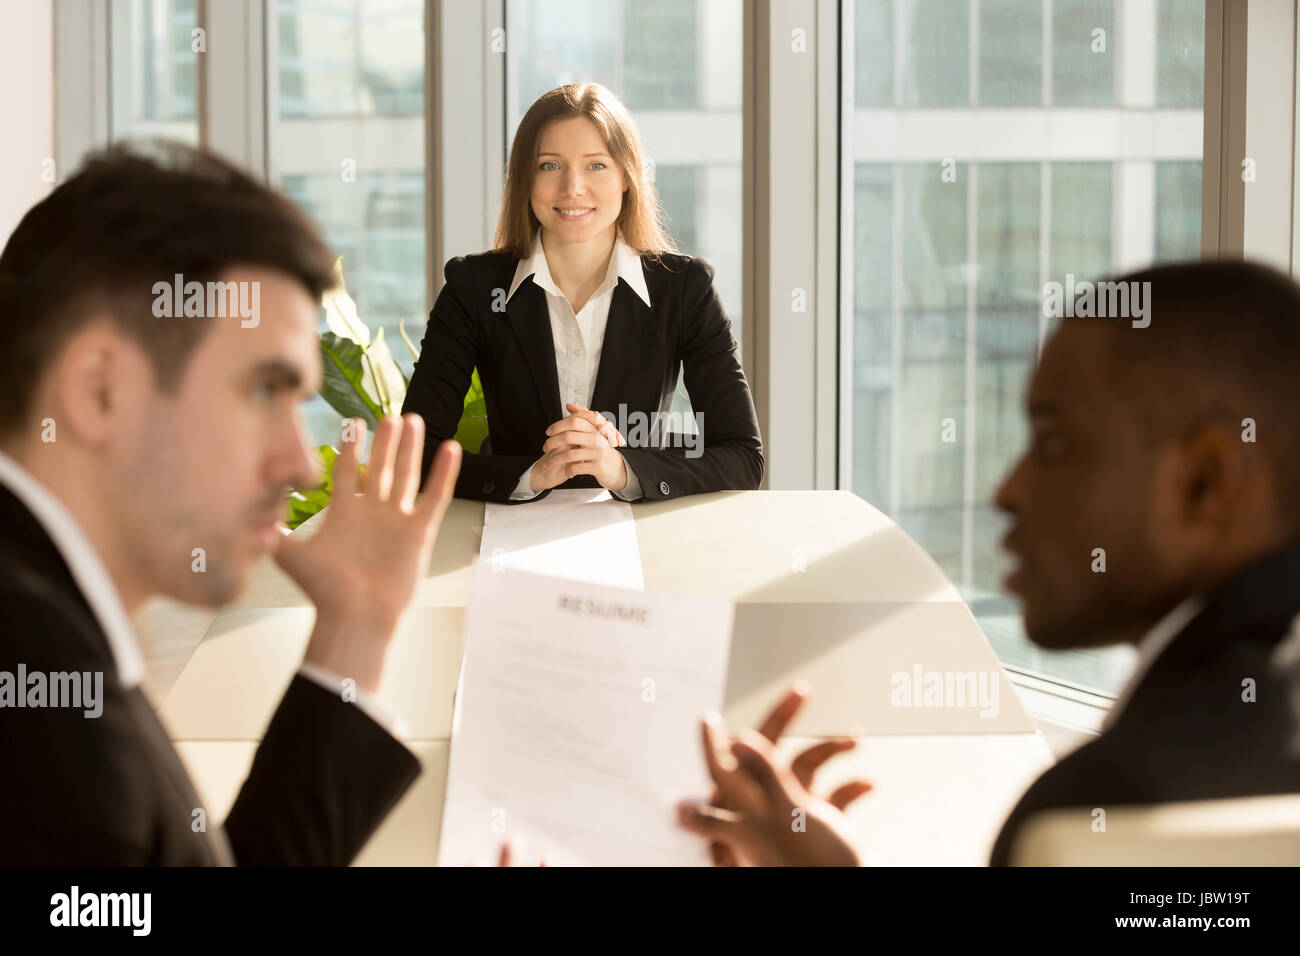 Worried nervous businesswoman waiting for result while recruiters reviewing resume, making hiring decision, unemployed - Stock Image